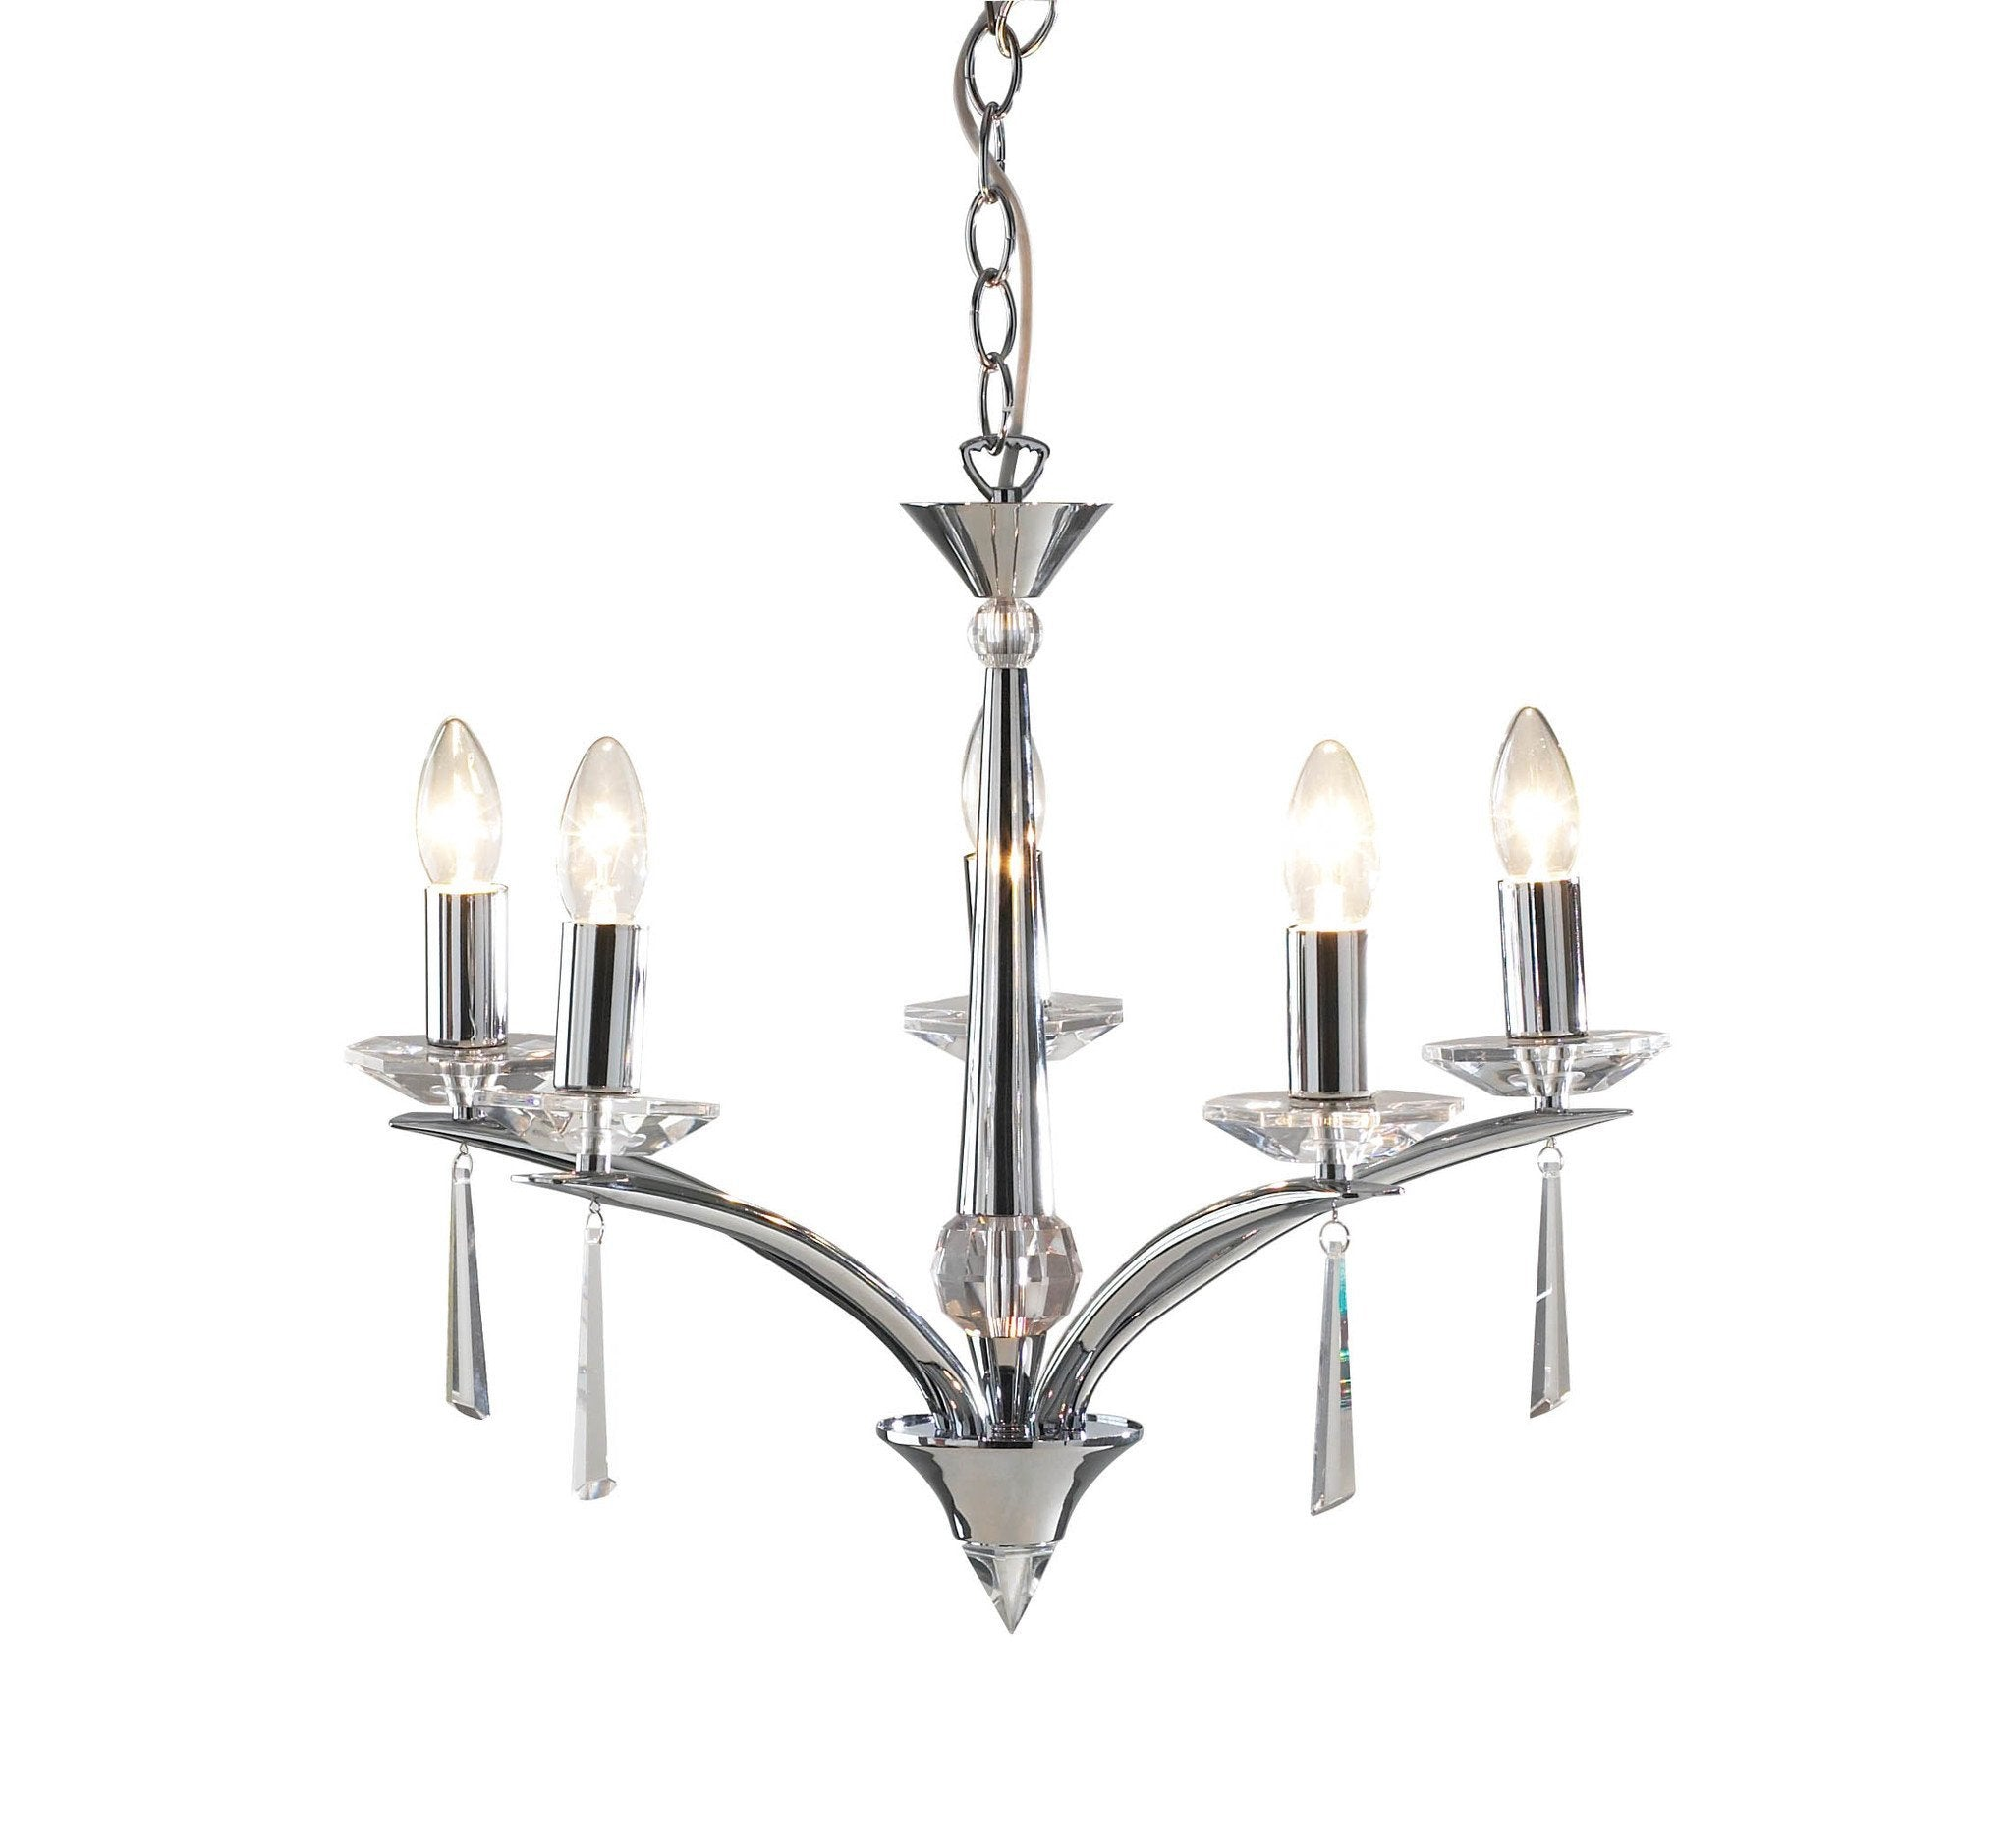 Hyperion Polished Chrome 5 Lamp Chandelier - London Lighting - 1